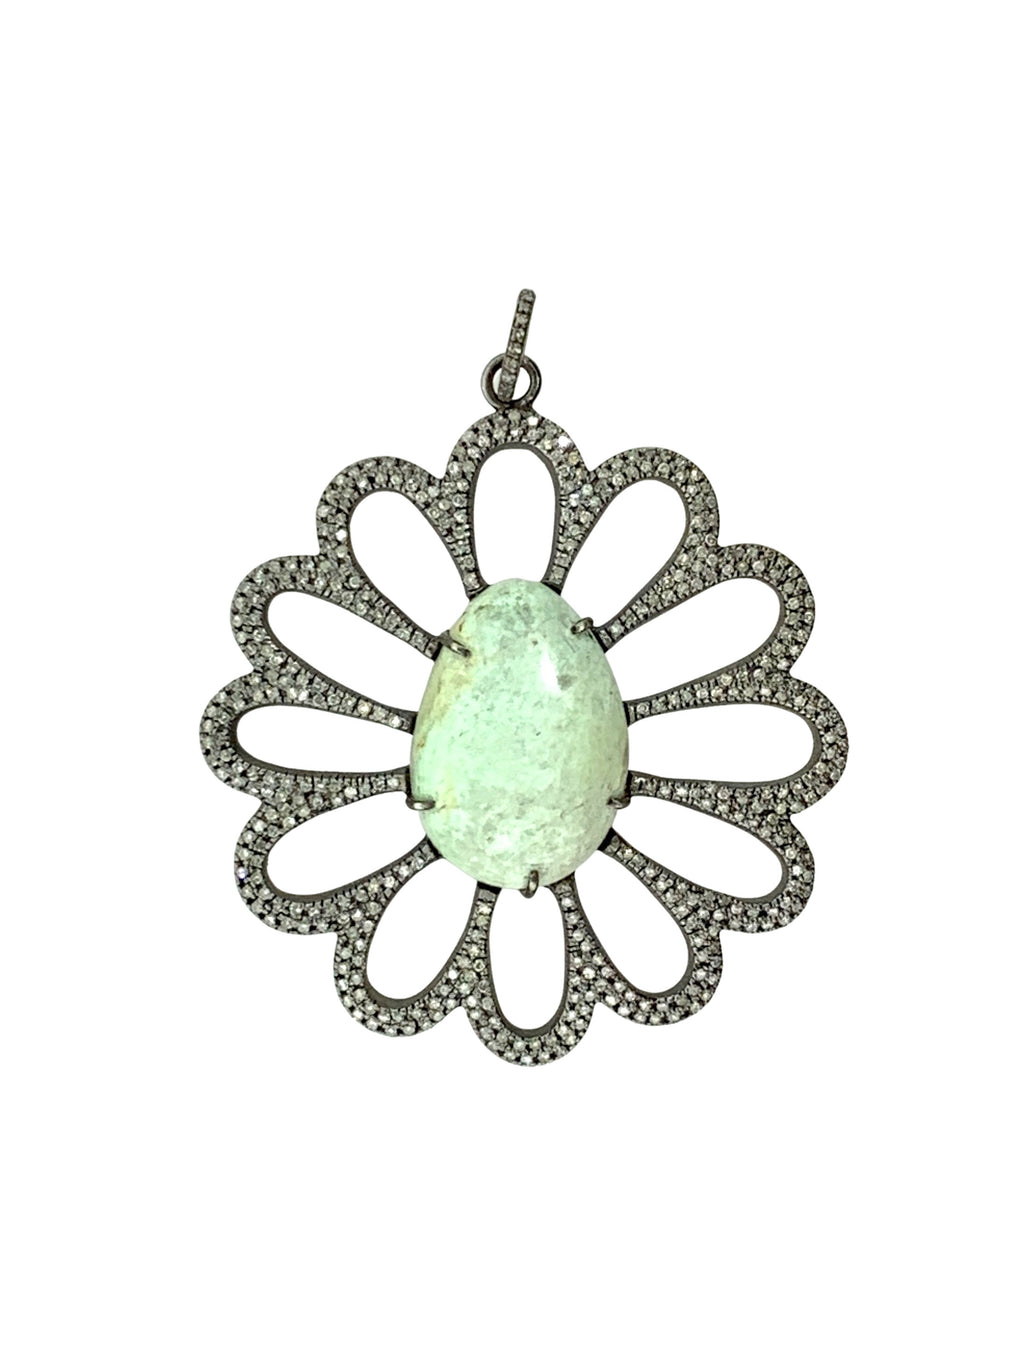 Pave Diamond Petals on Amazonite Flower